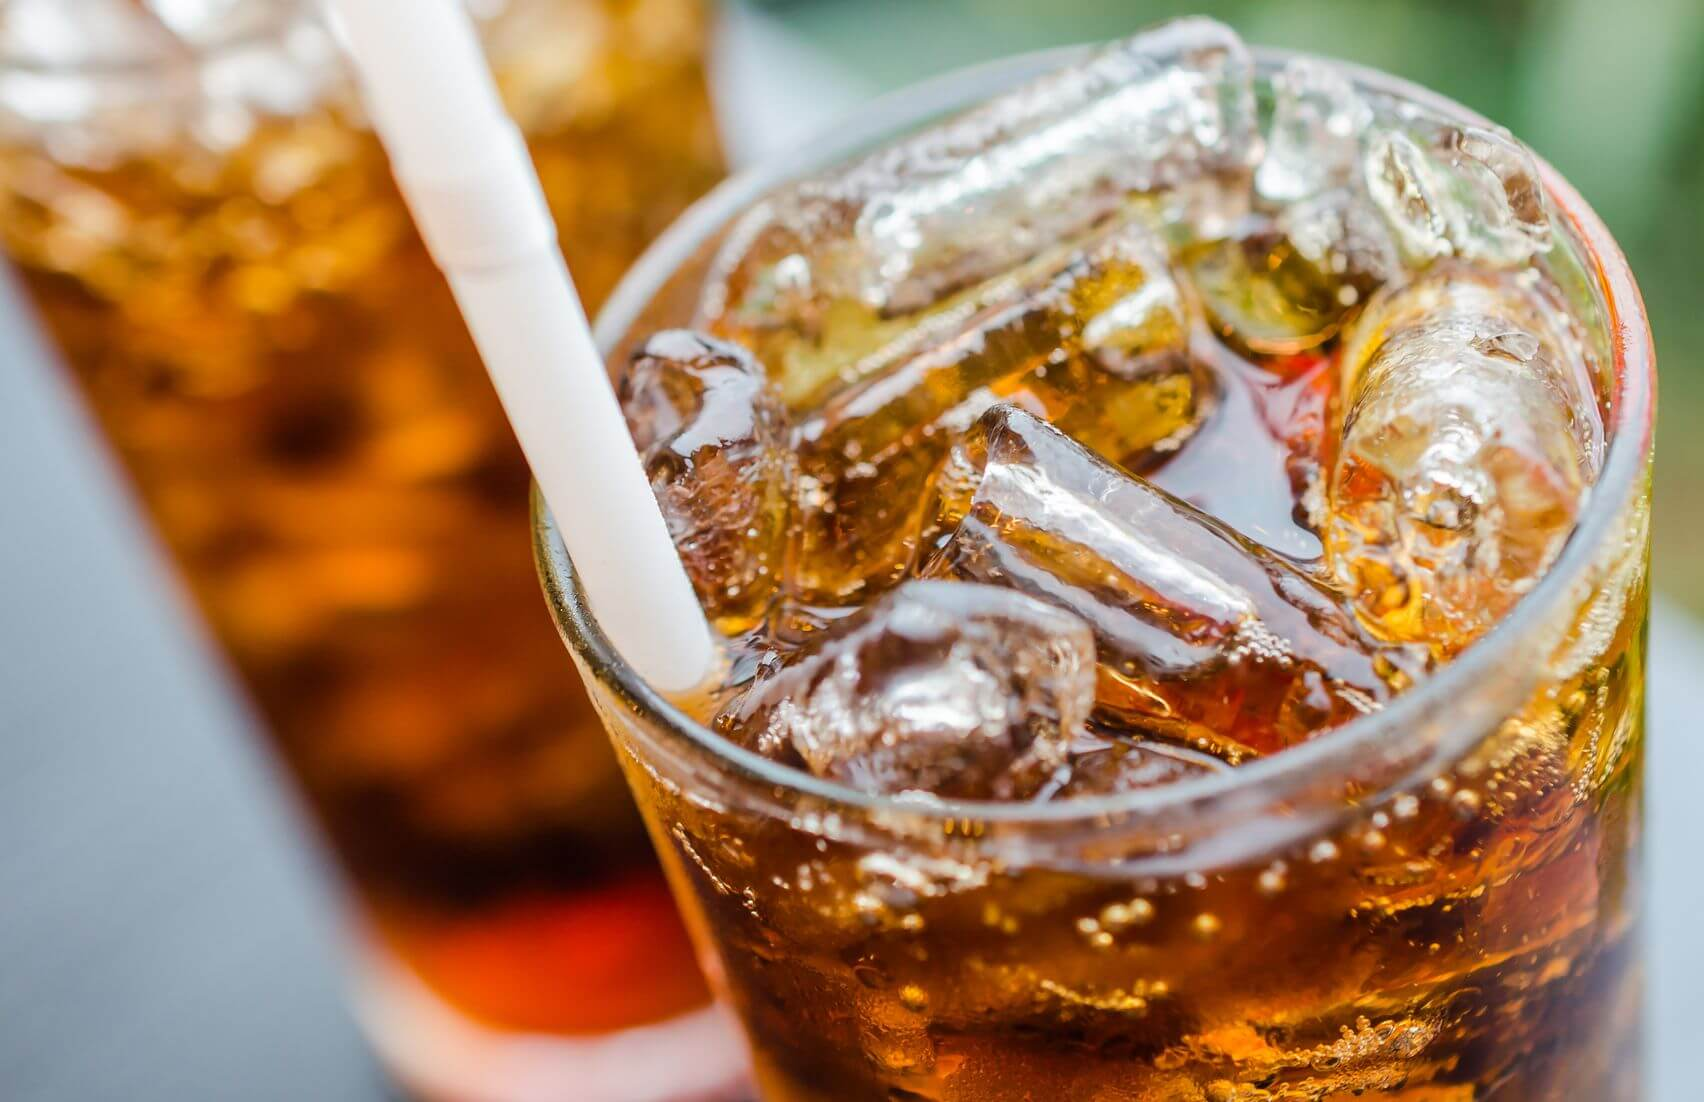 Coke with ice in glass - another food high in sugar making you fat